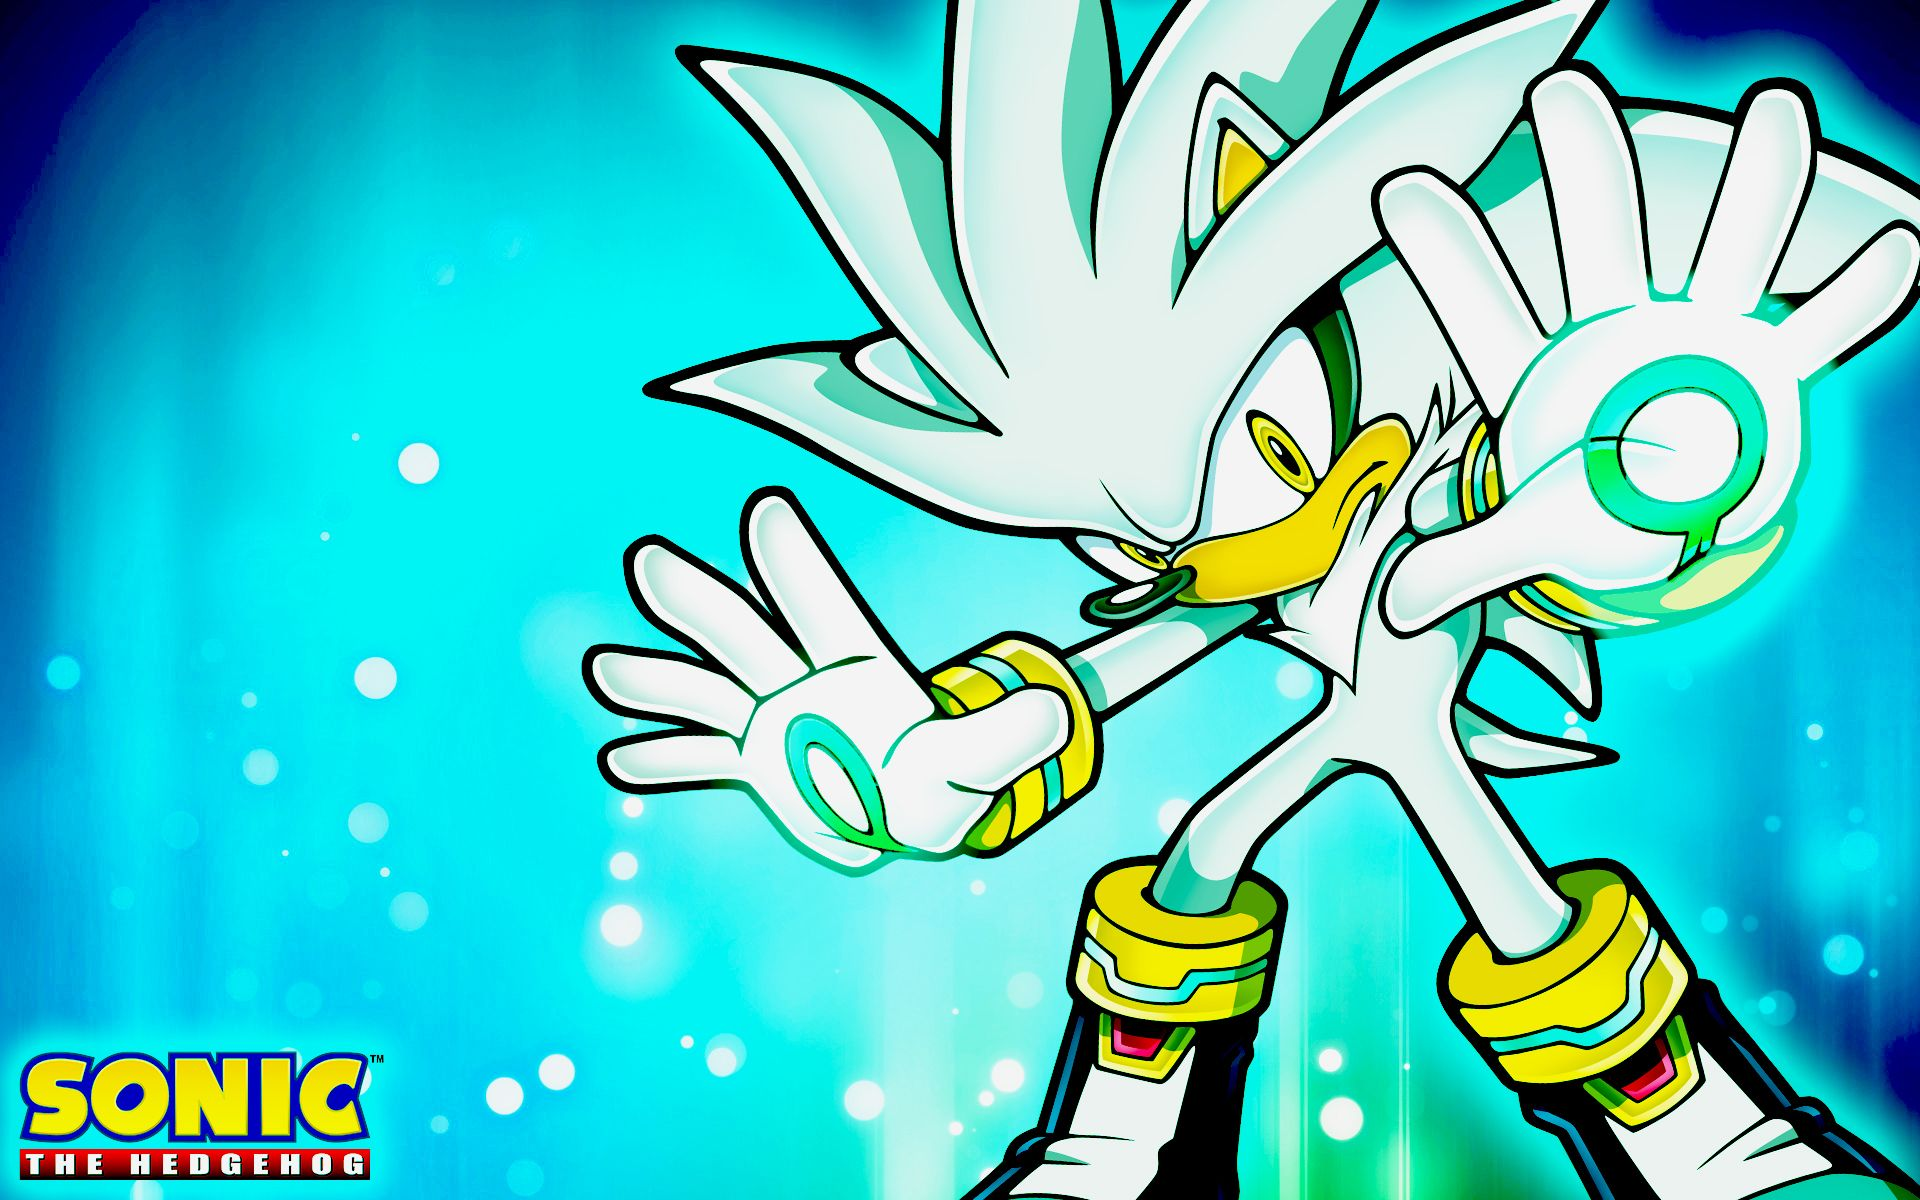 Dark Silver The Hedgehog